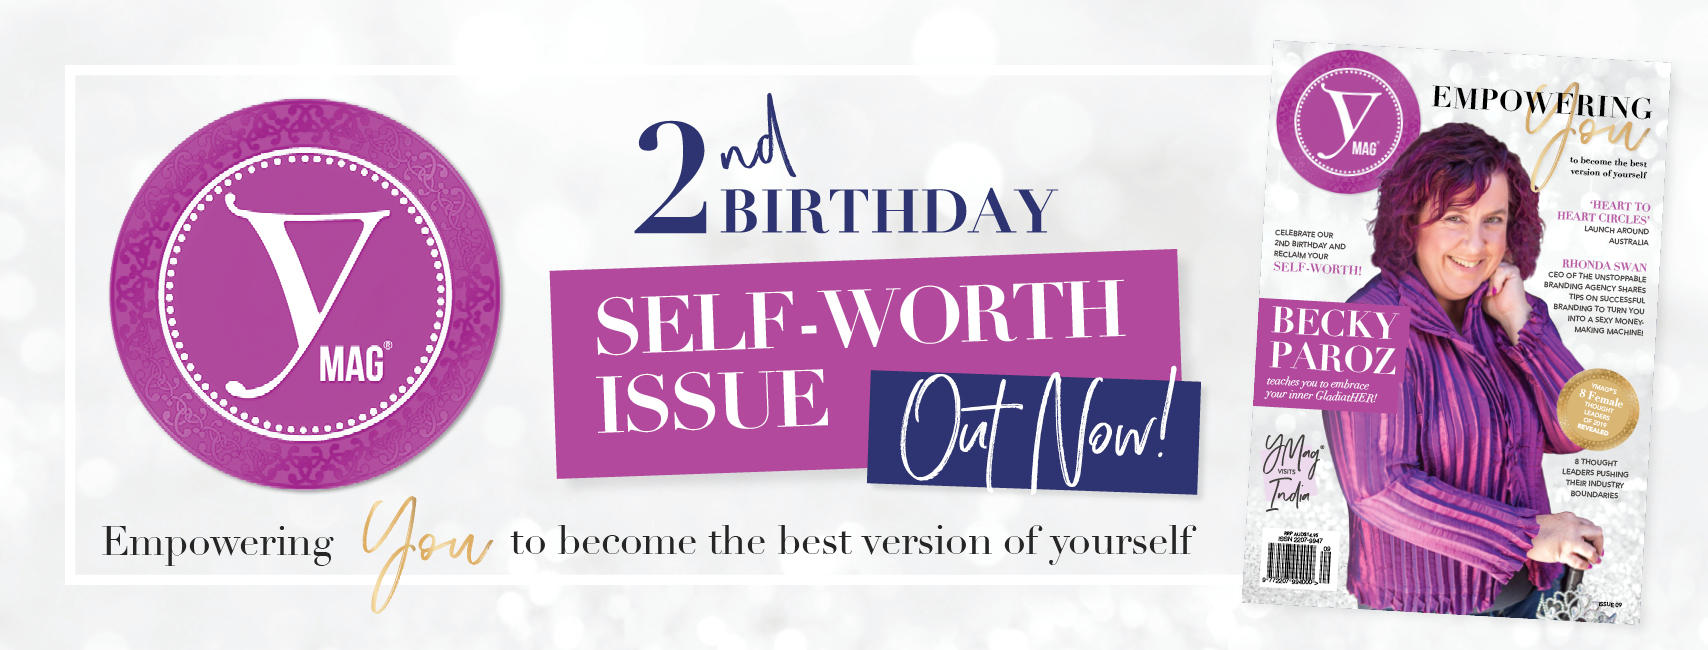 YMag Self-Worth Issue 2nd Birthday